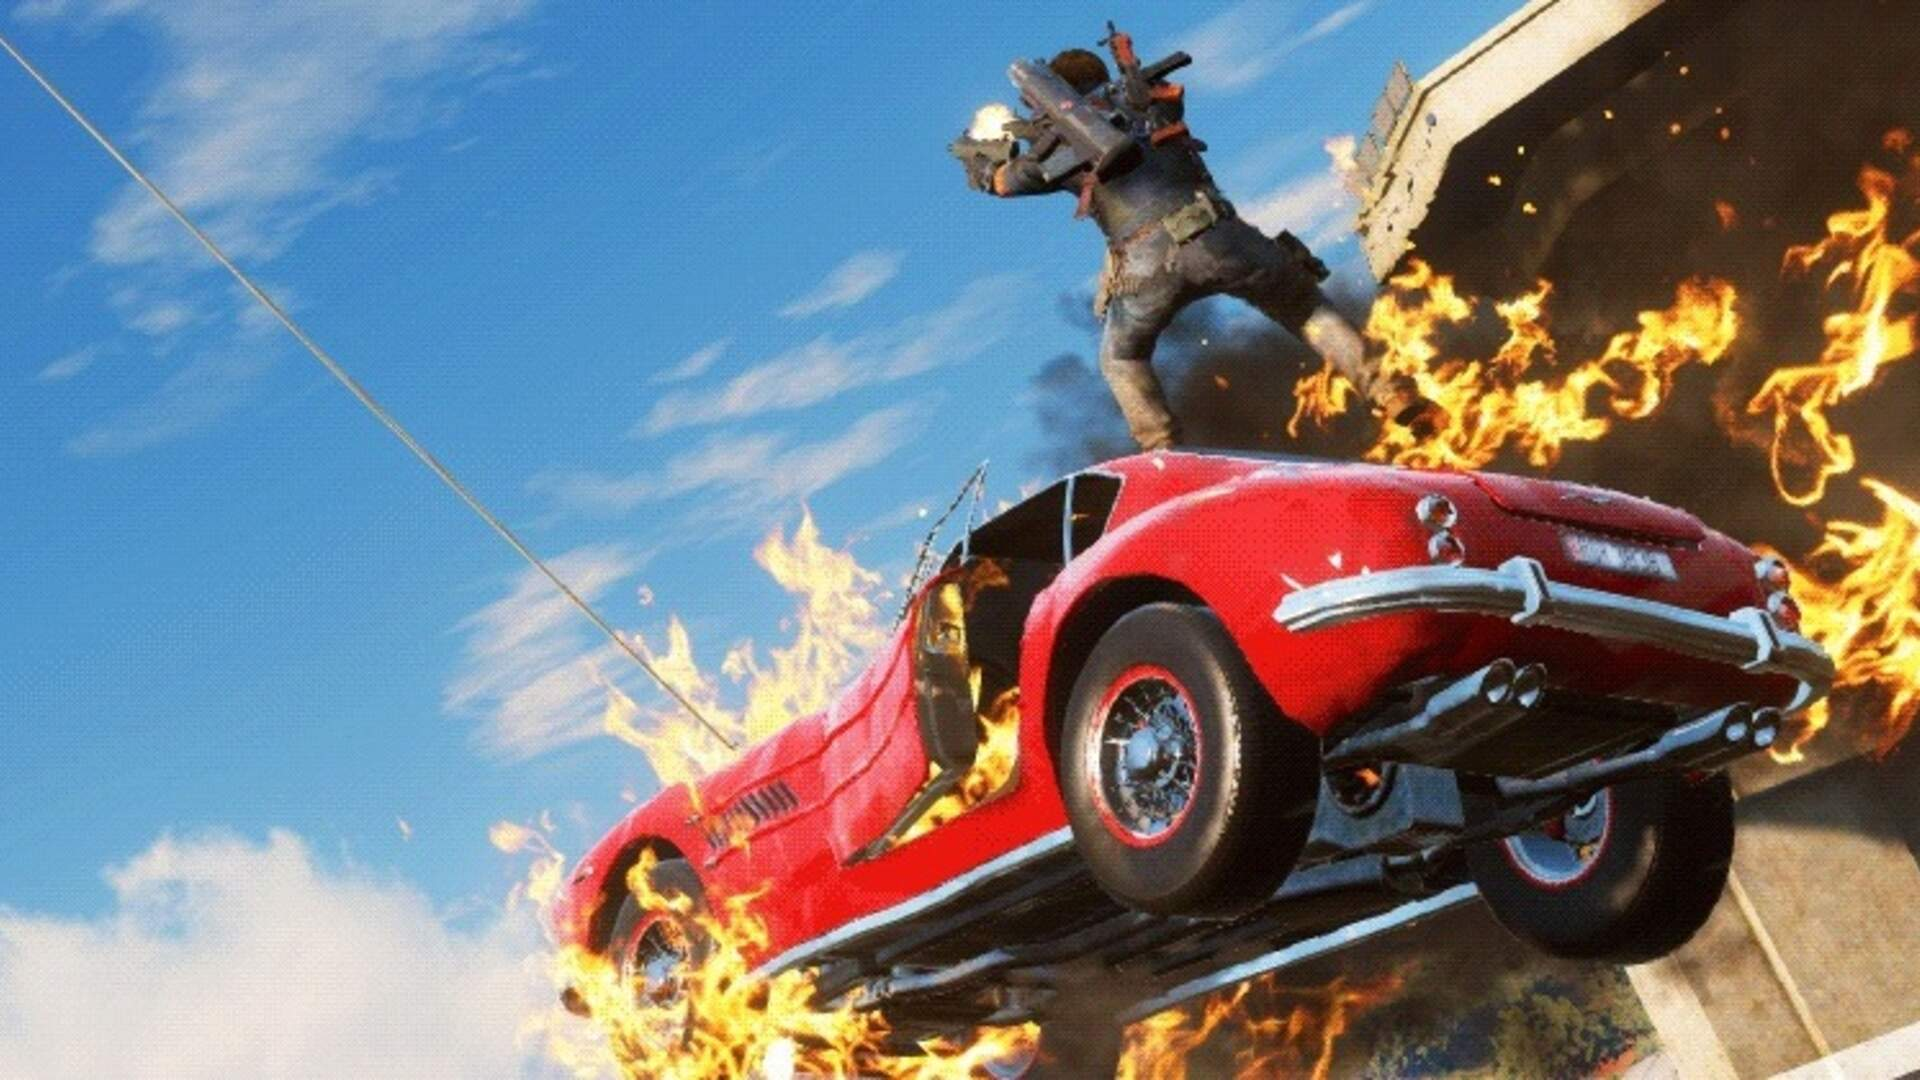 Just Cause 3 Story Mission Guide: Three's Company, Shoot the Gate Controls, Escort Annika and Teo